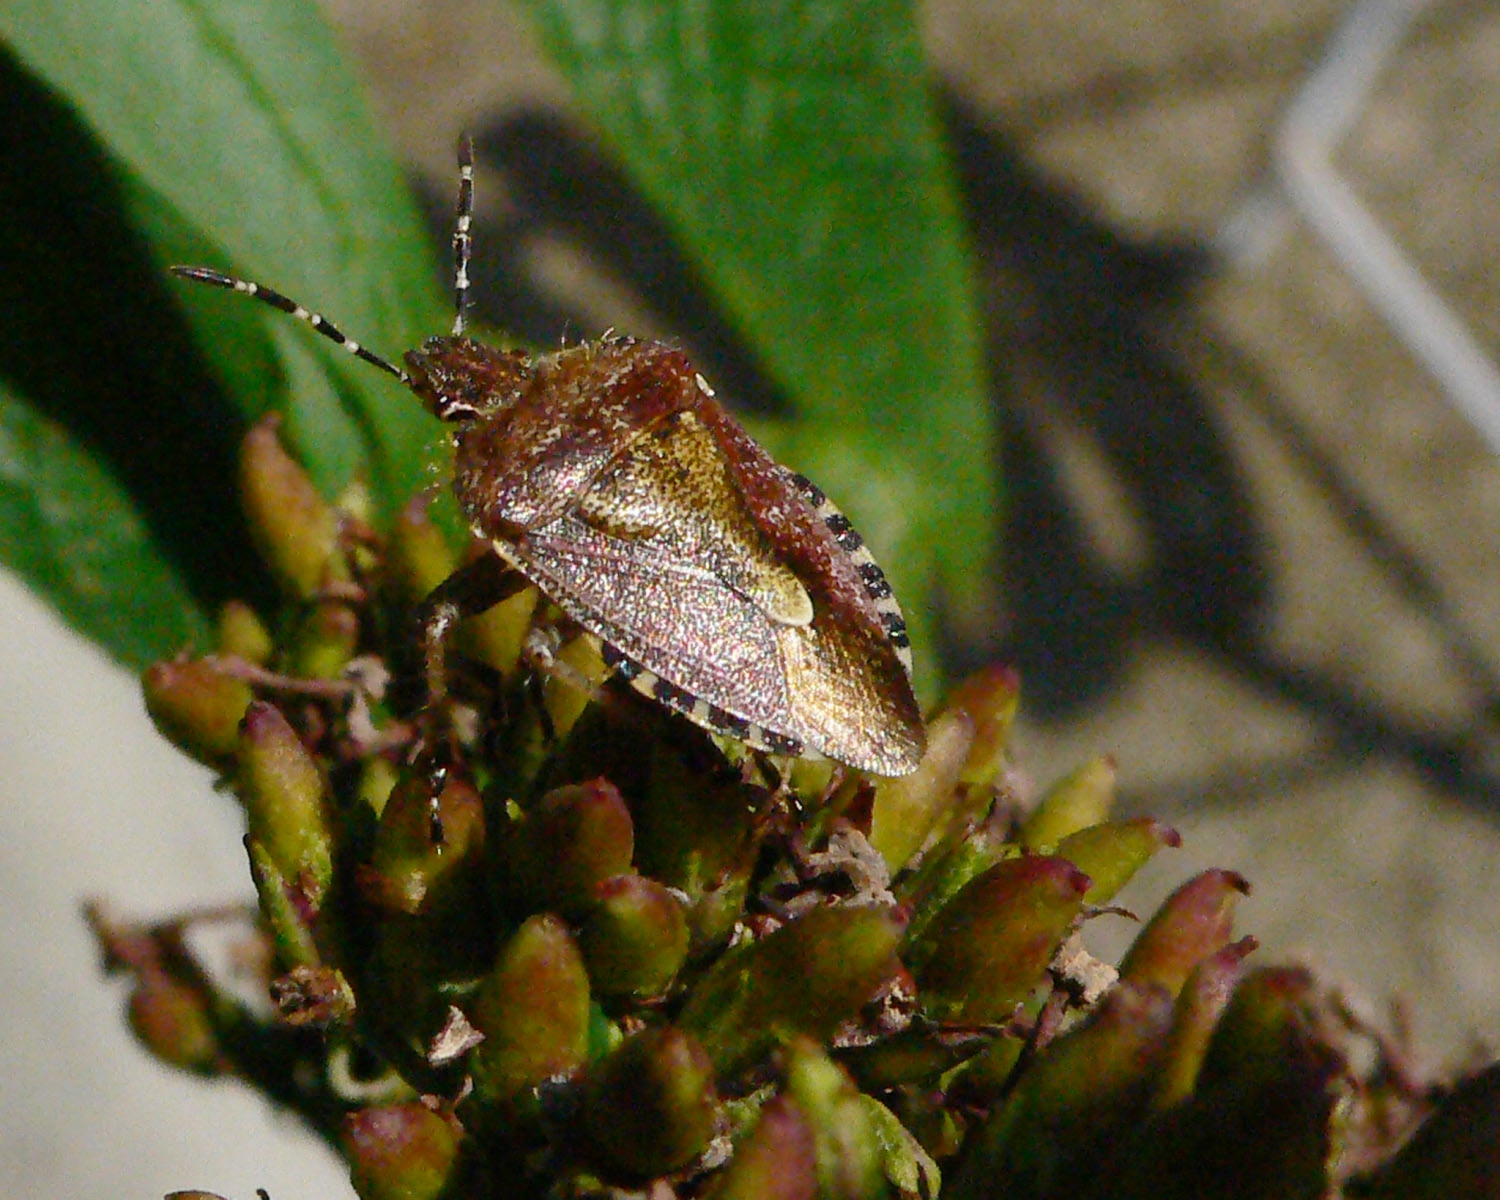 Dolycoris baccarum - Hairy Shieldbug